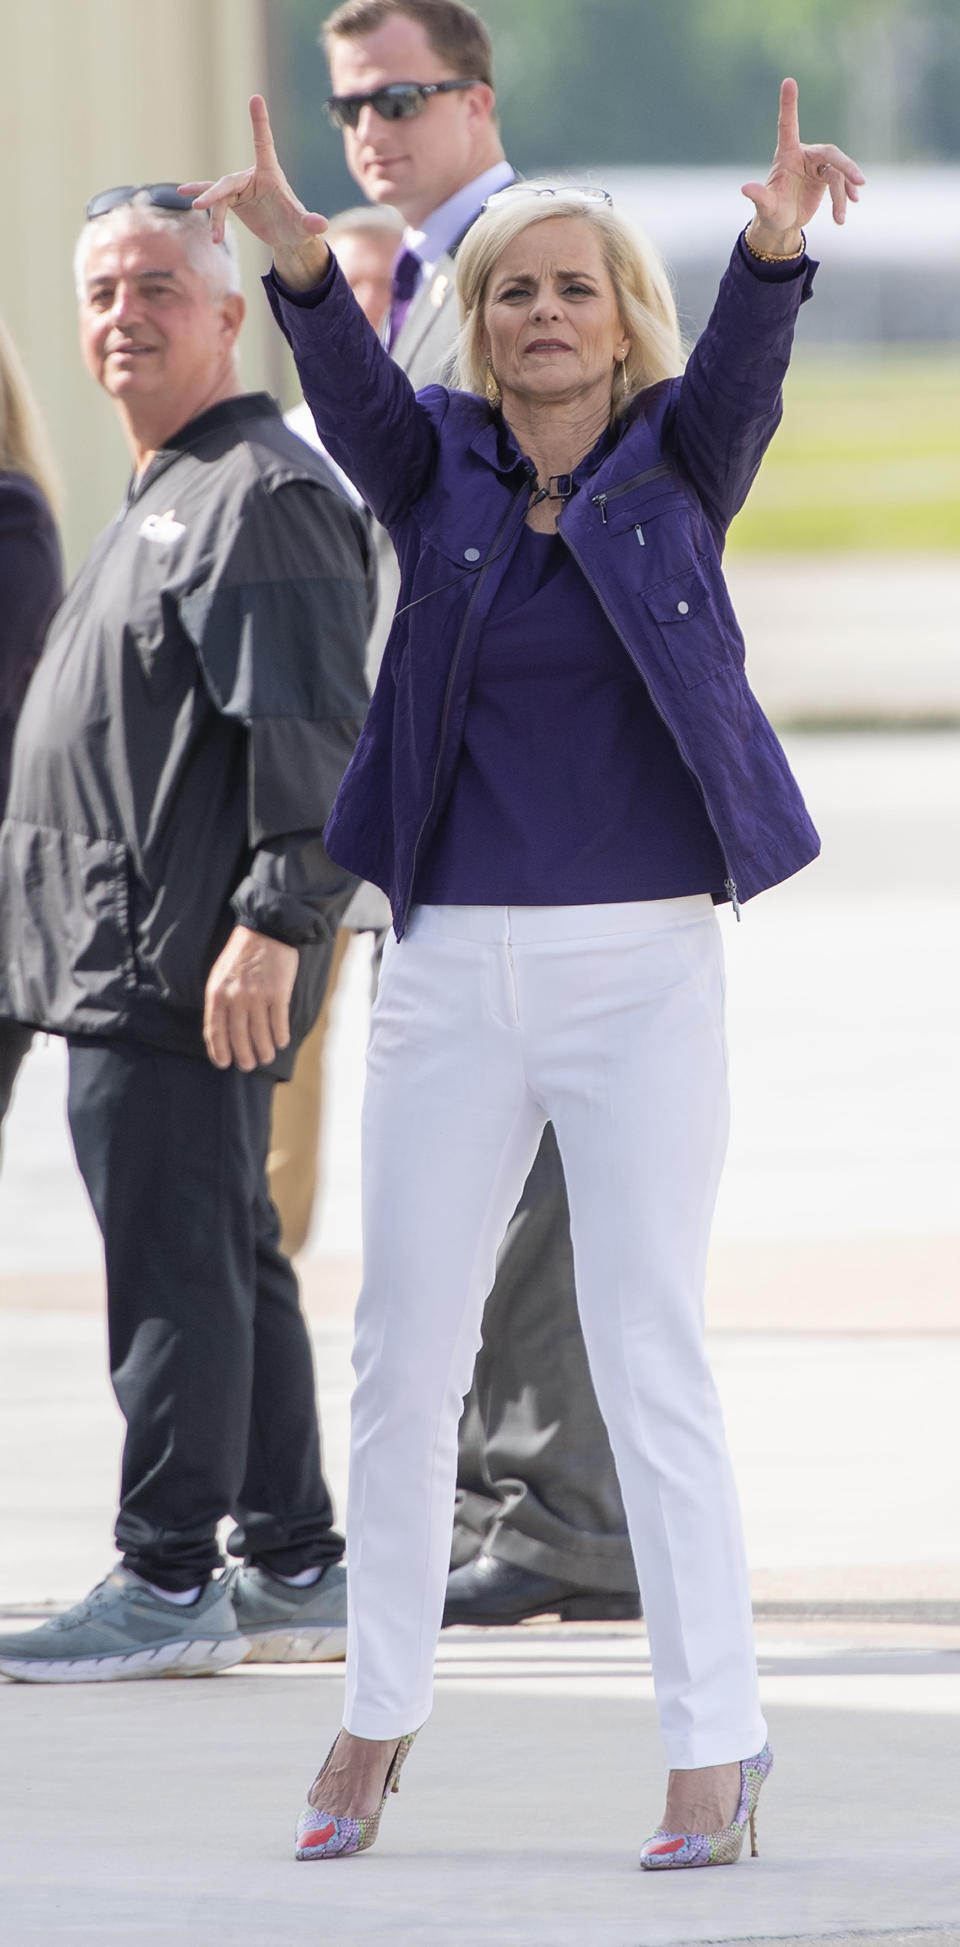 Former Baylor women's basketball coach Kim Mulkey waves the folks behind the fence after arriving at Metro Airport to become LSU's women's basketball coach Monday, April 26, 2021, in Baton Rouge, La. (Bill Feig/The Advocate via AP)